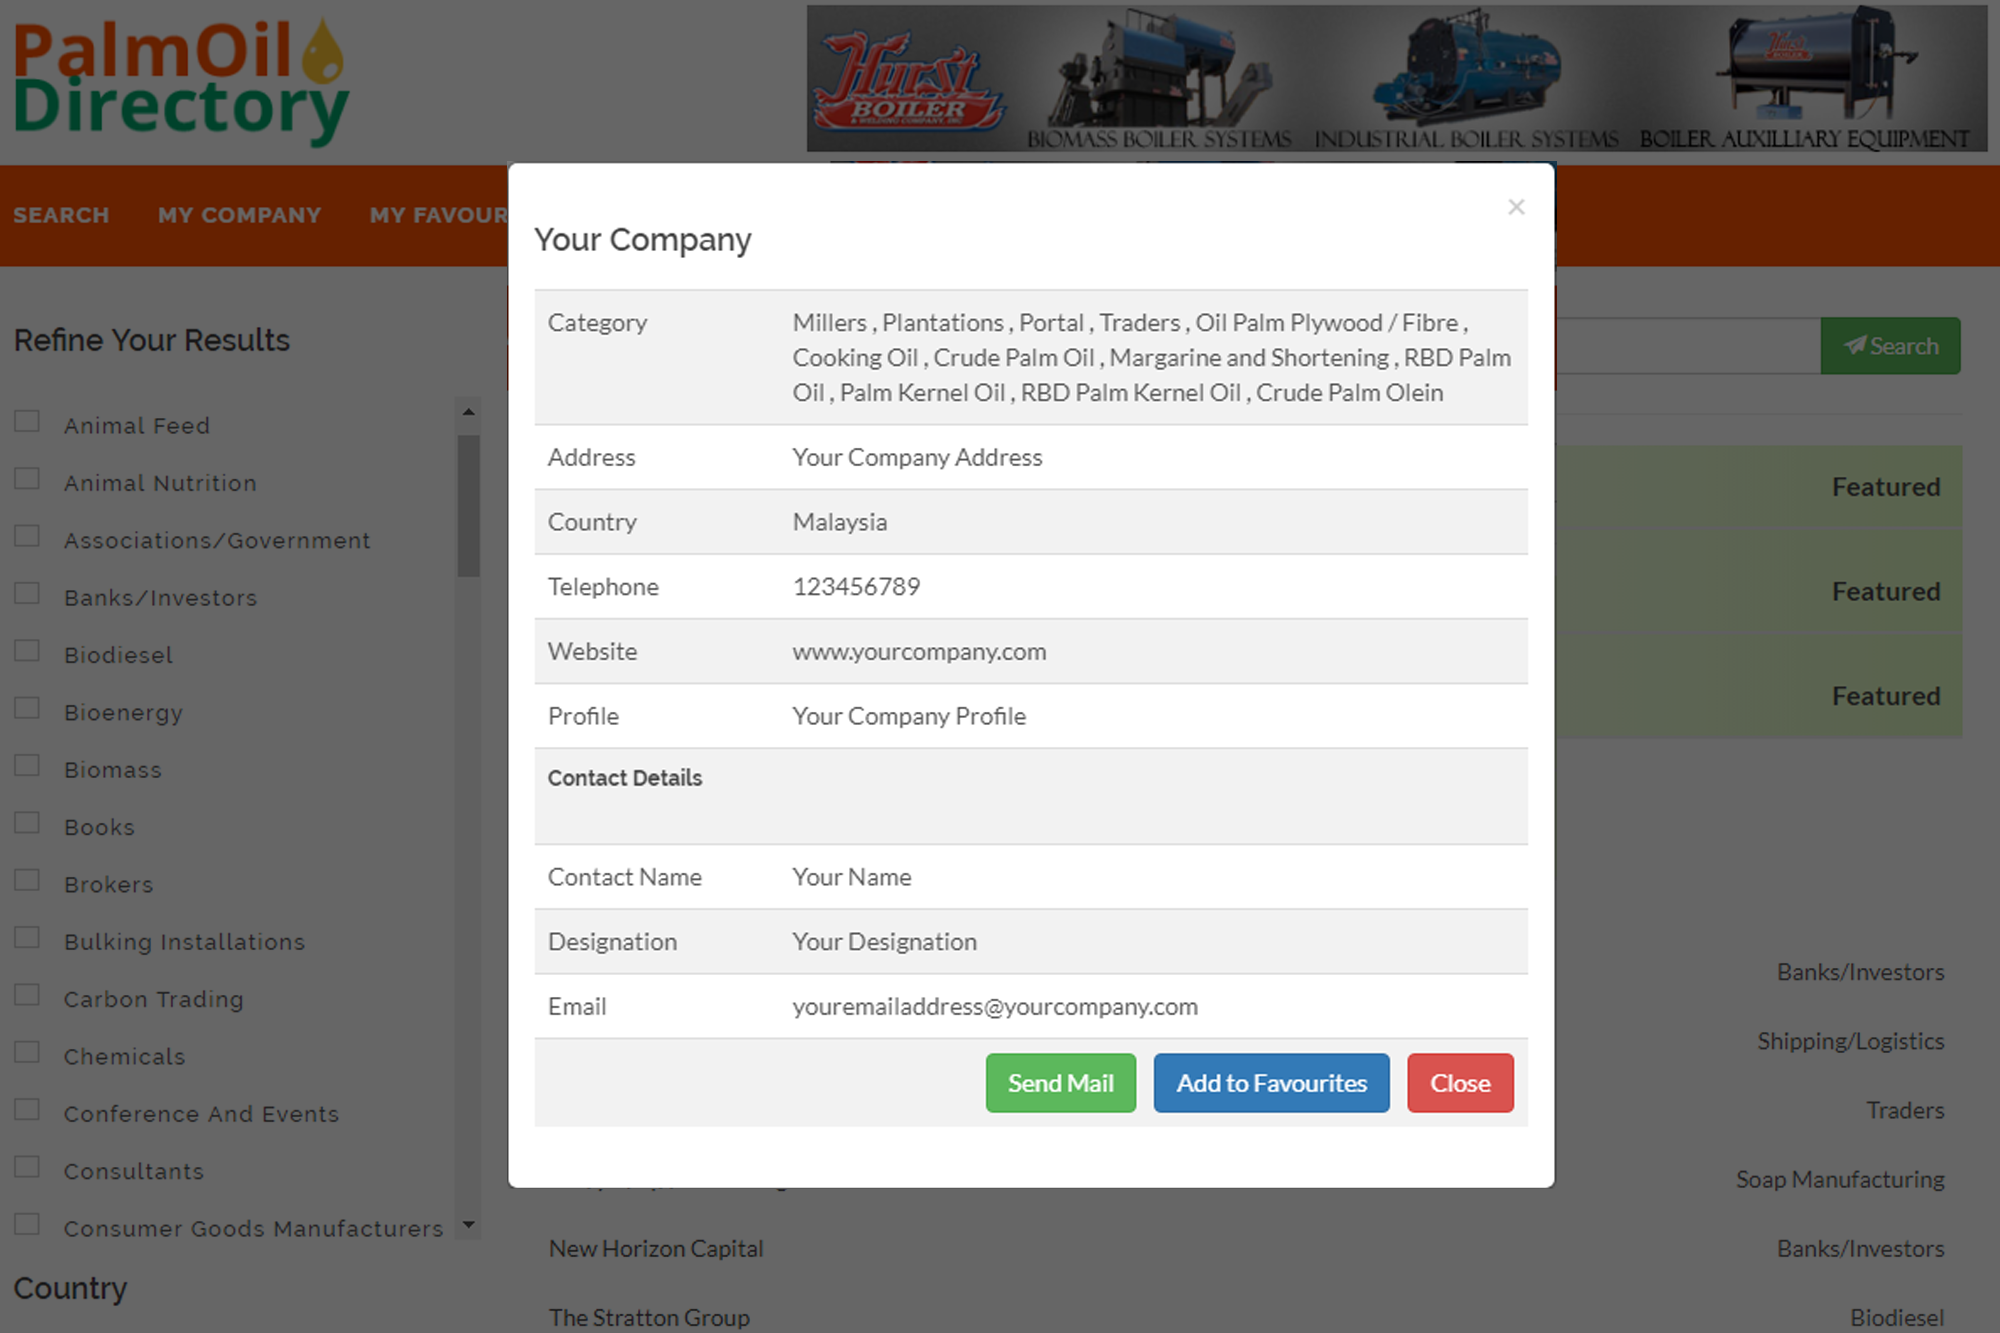 PalmOil Directory